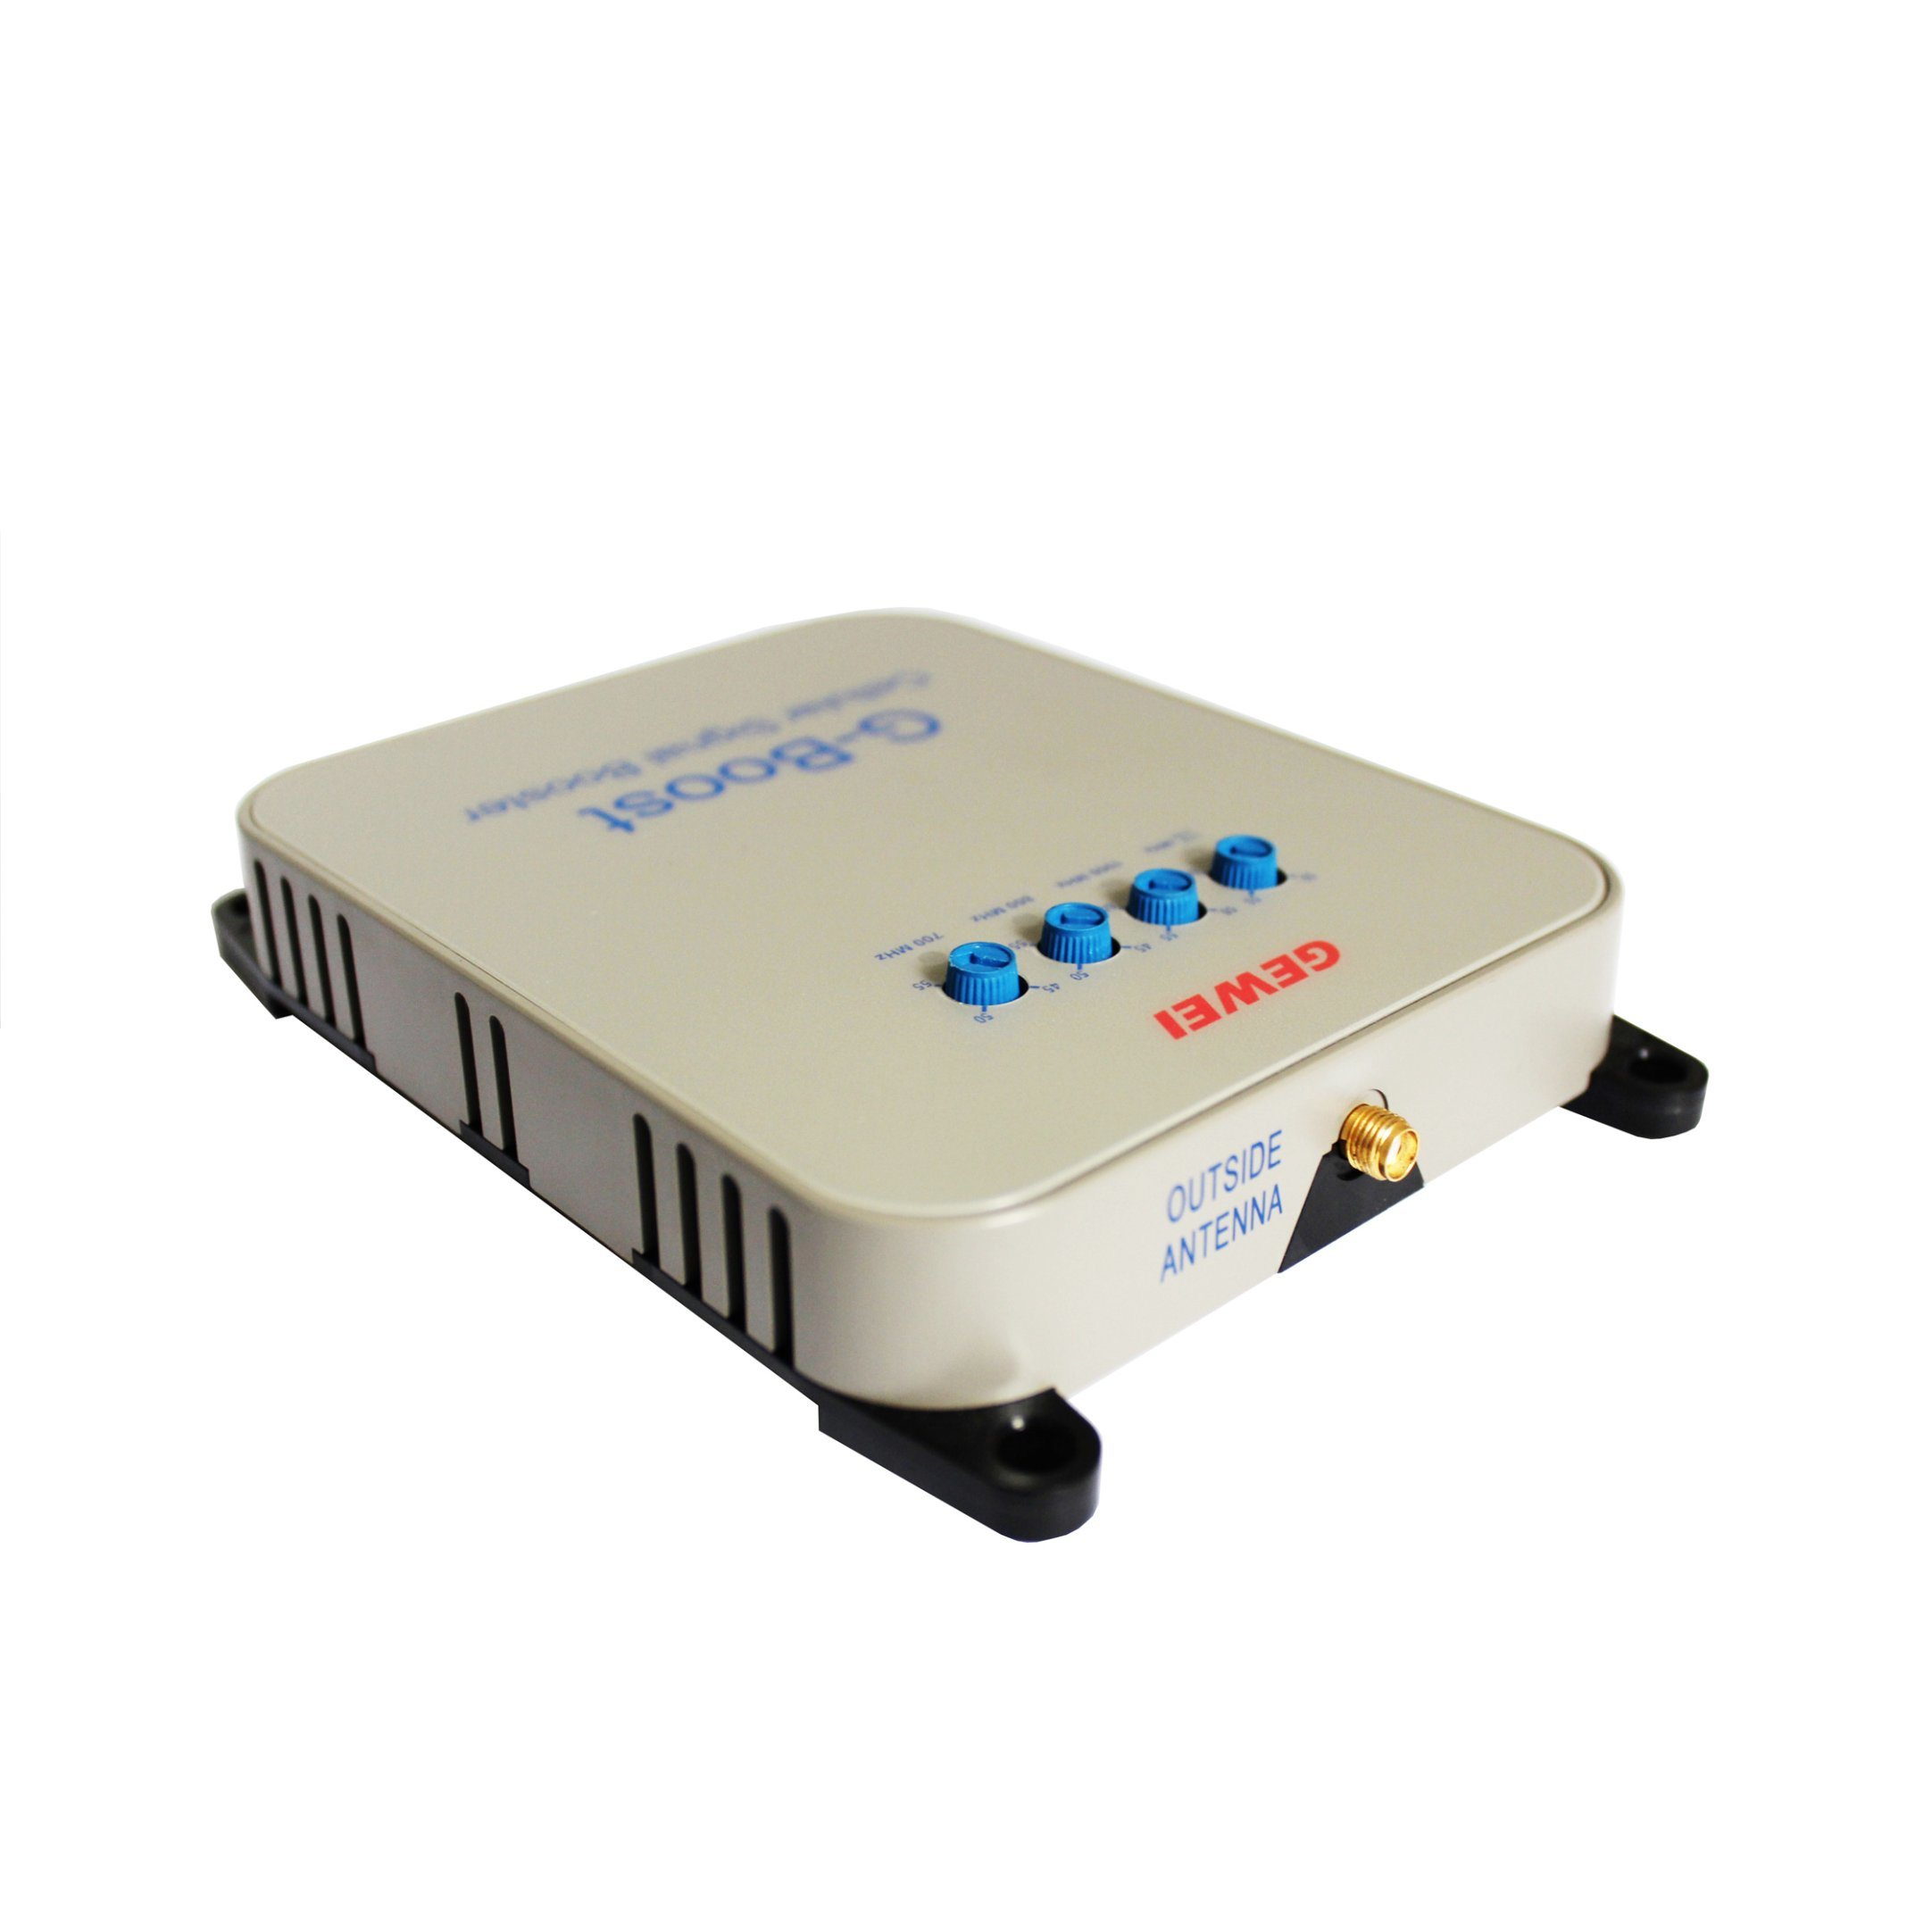 GSM/WCDMA/CDMA/Lte 2g/3G/4G Smart Cell Phone Cellular Single Band RF Wireless Mobilephone Signal Repeater with FCC Certification